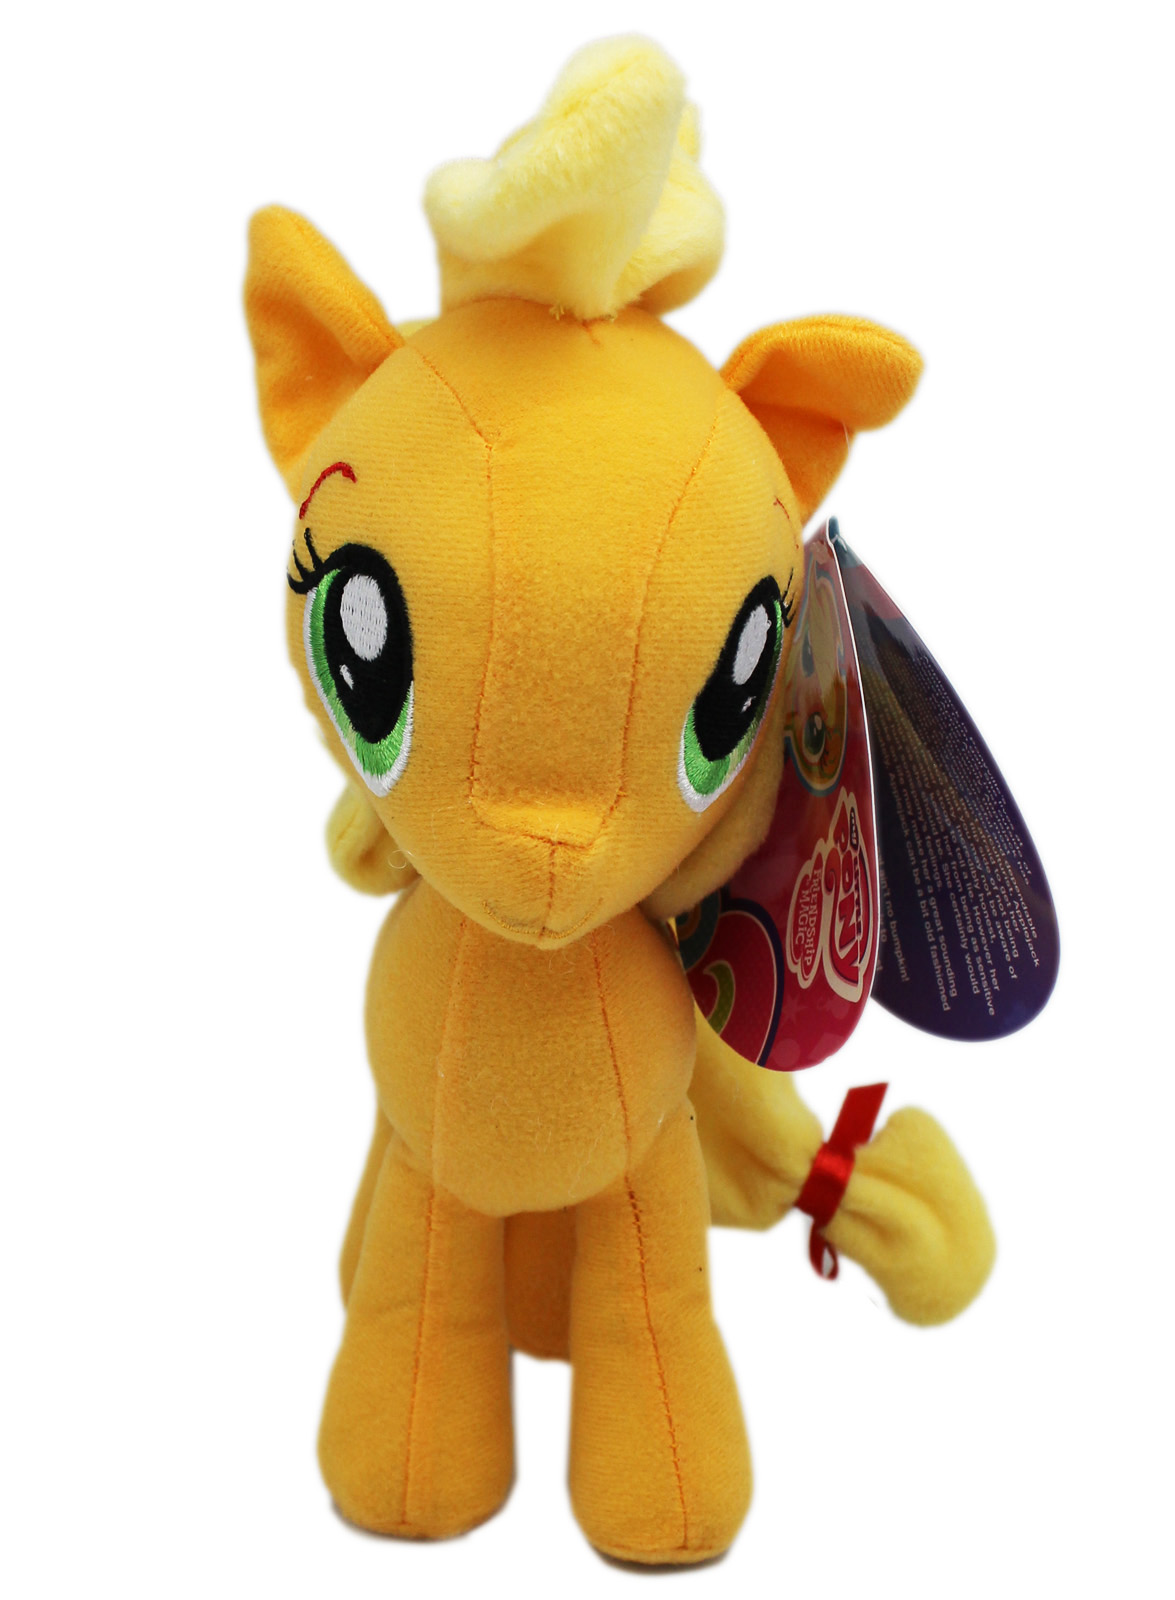 My Little Pony Friendship is Magic Applejack Plush Toy (8in) by